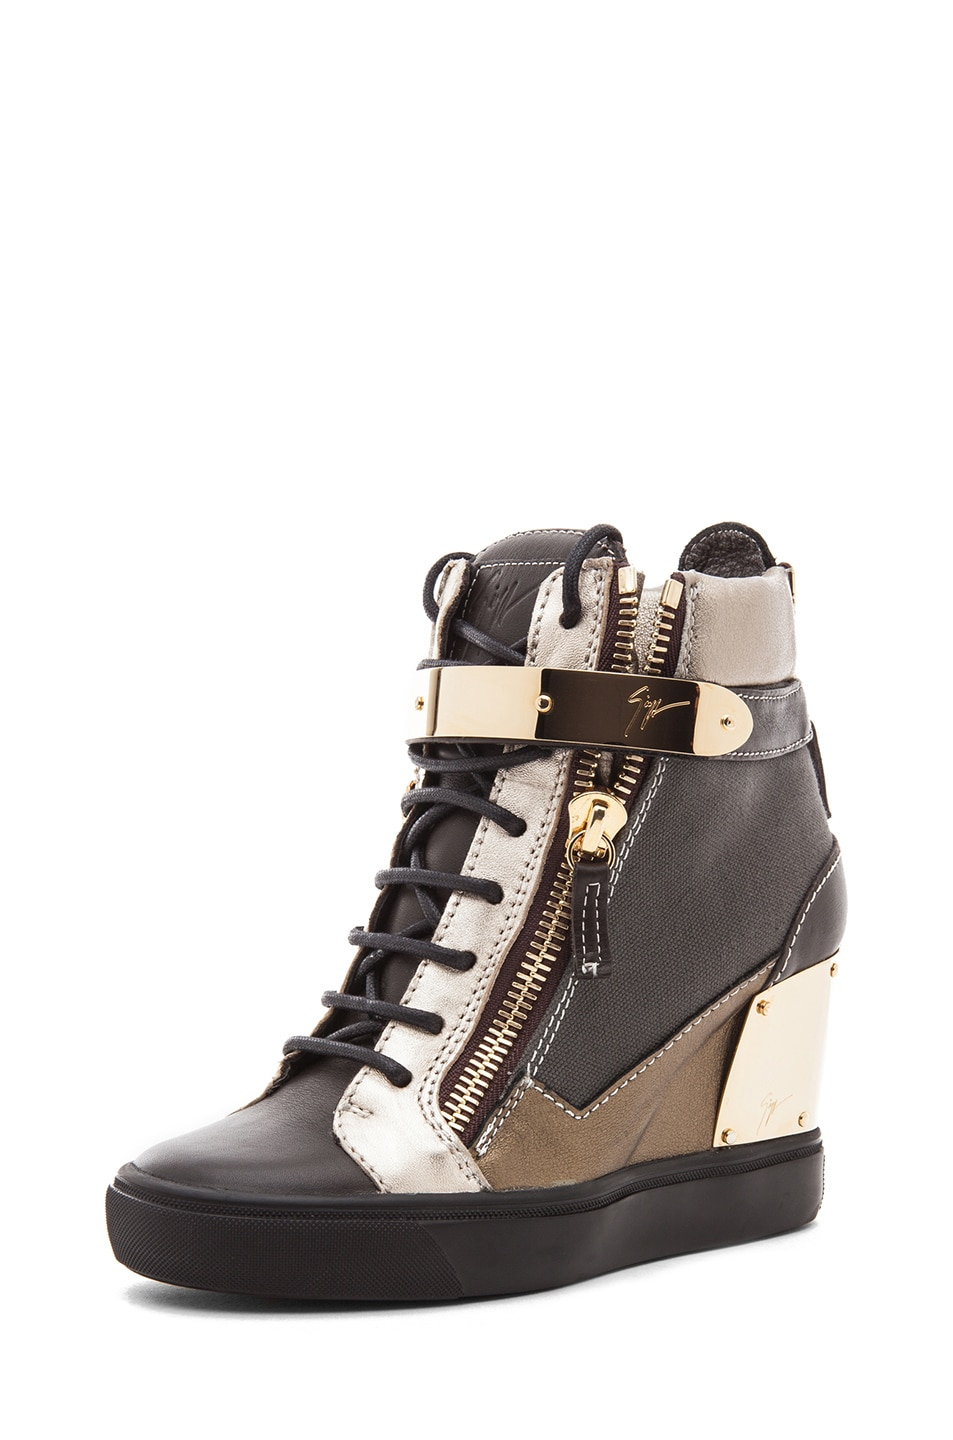 Image 2 of Giuseppe Zanotti Canvas & Leather Gold Strap Sneaker Wedge in Black Metallic